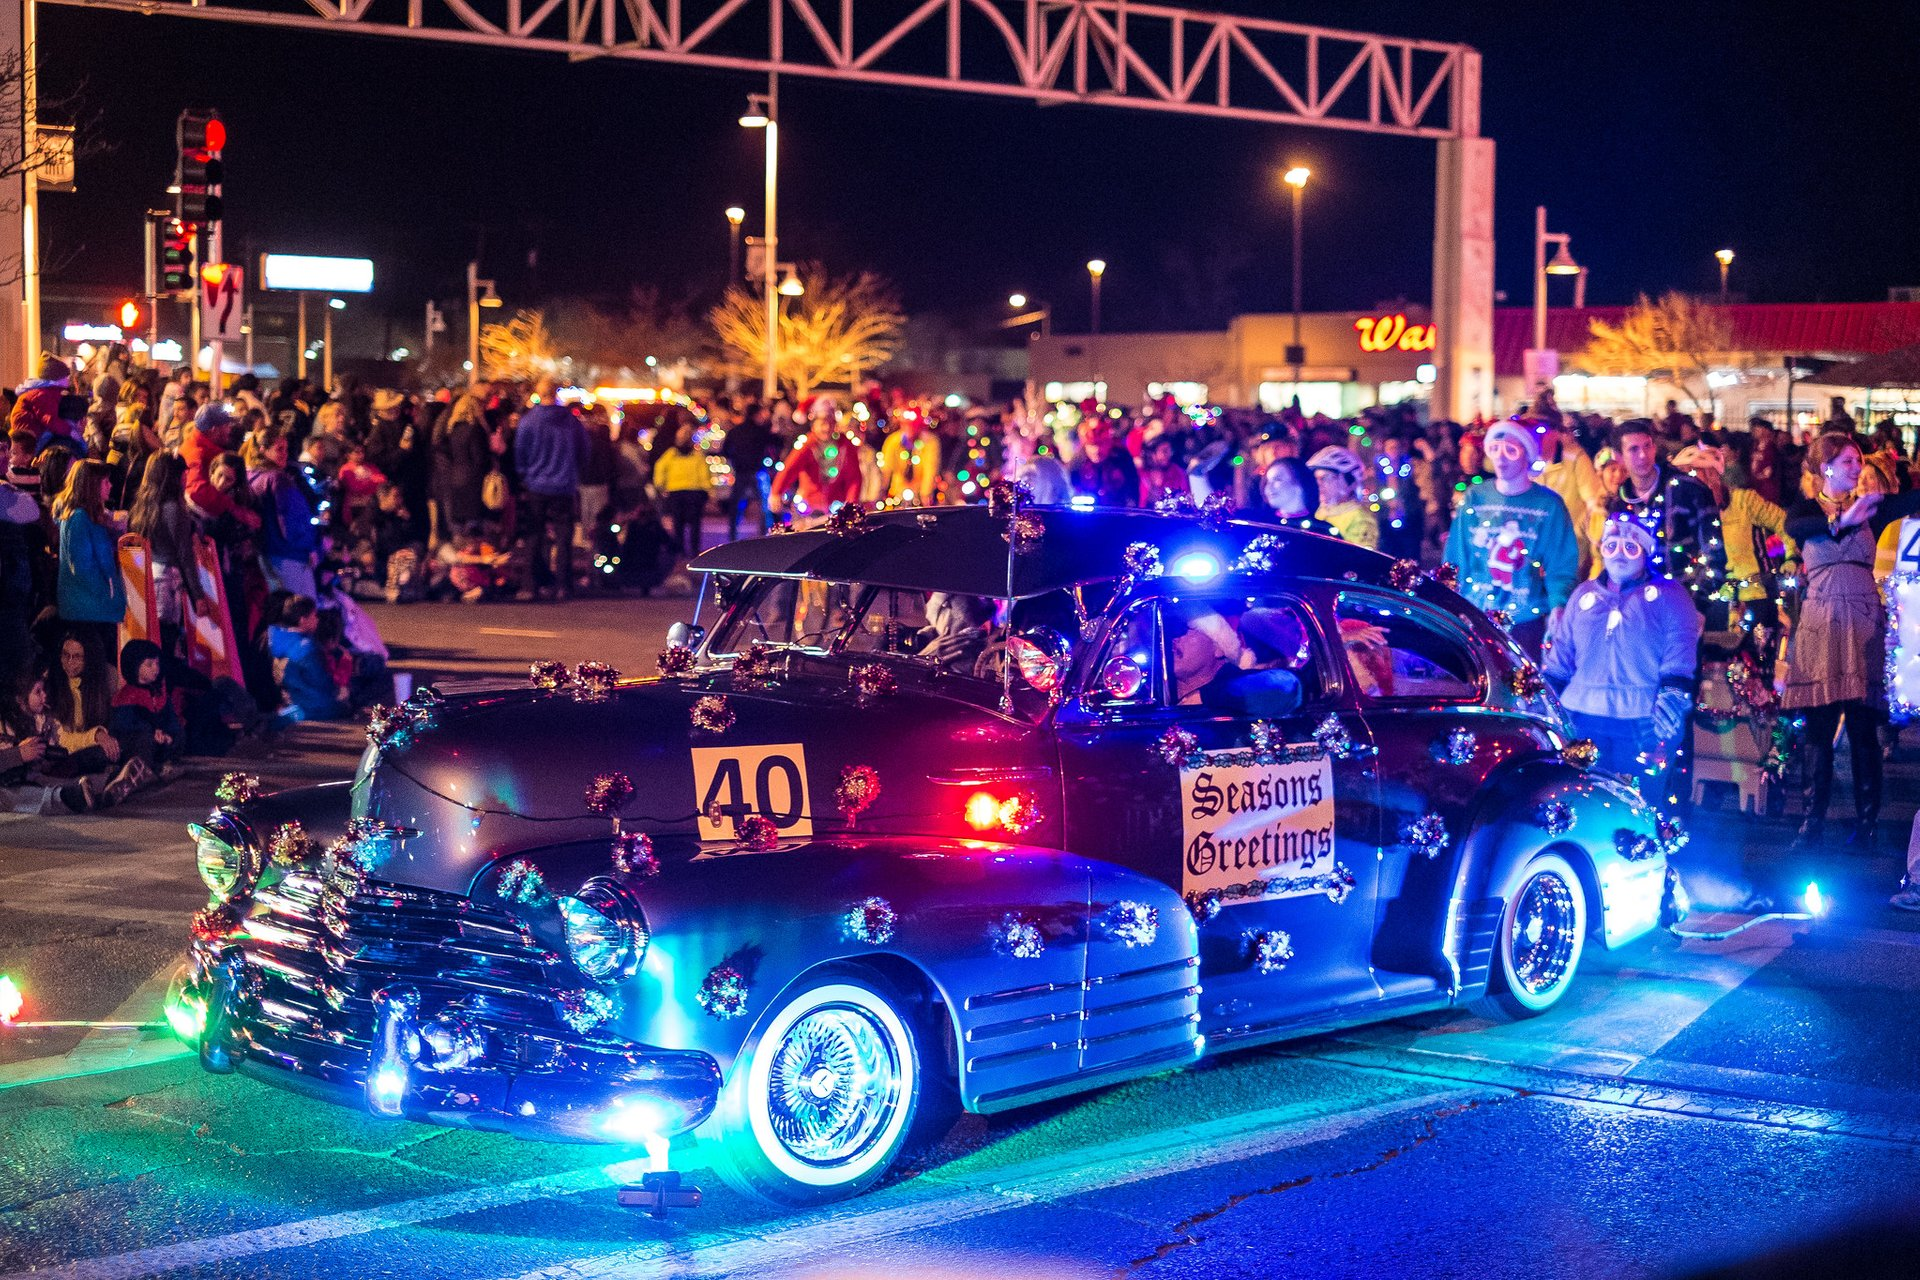 Twinkle Light Parade in Albuquerque in New Mexico - Best Season 2020